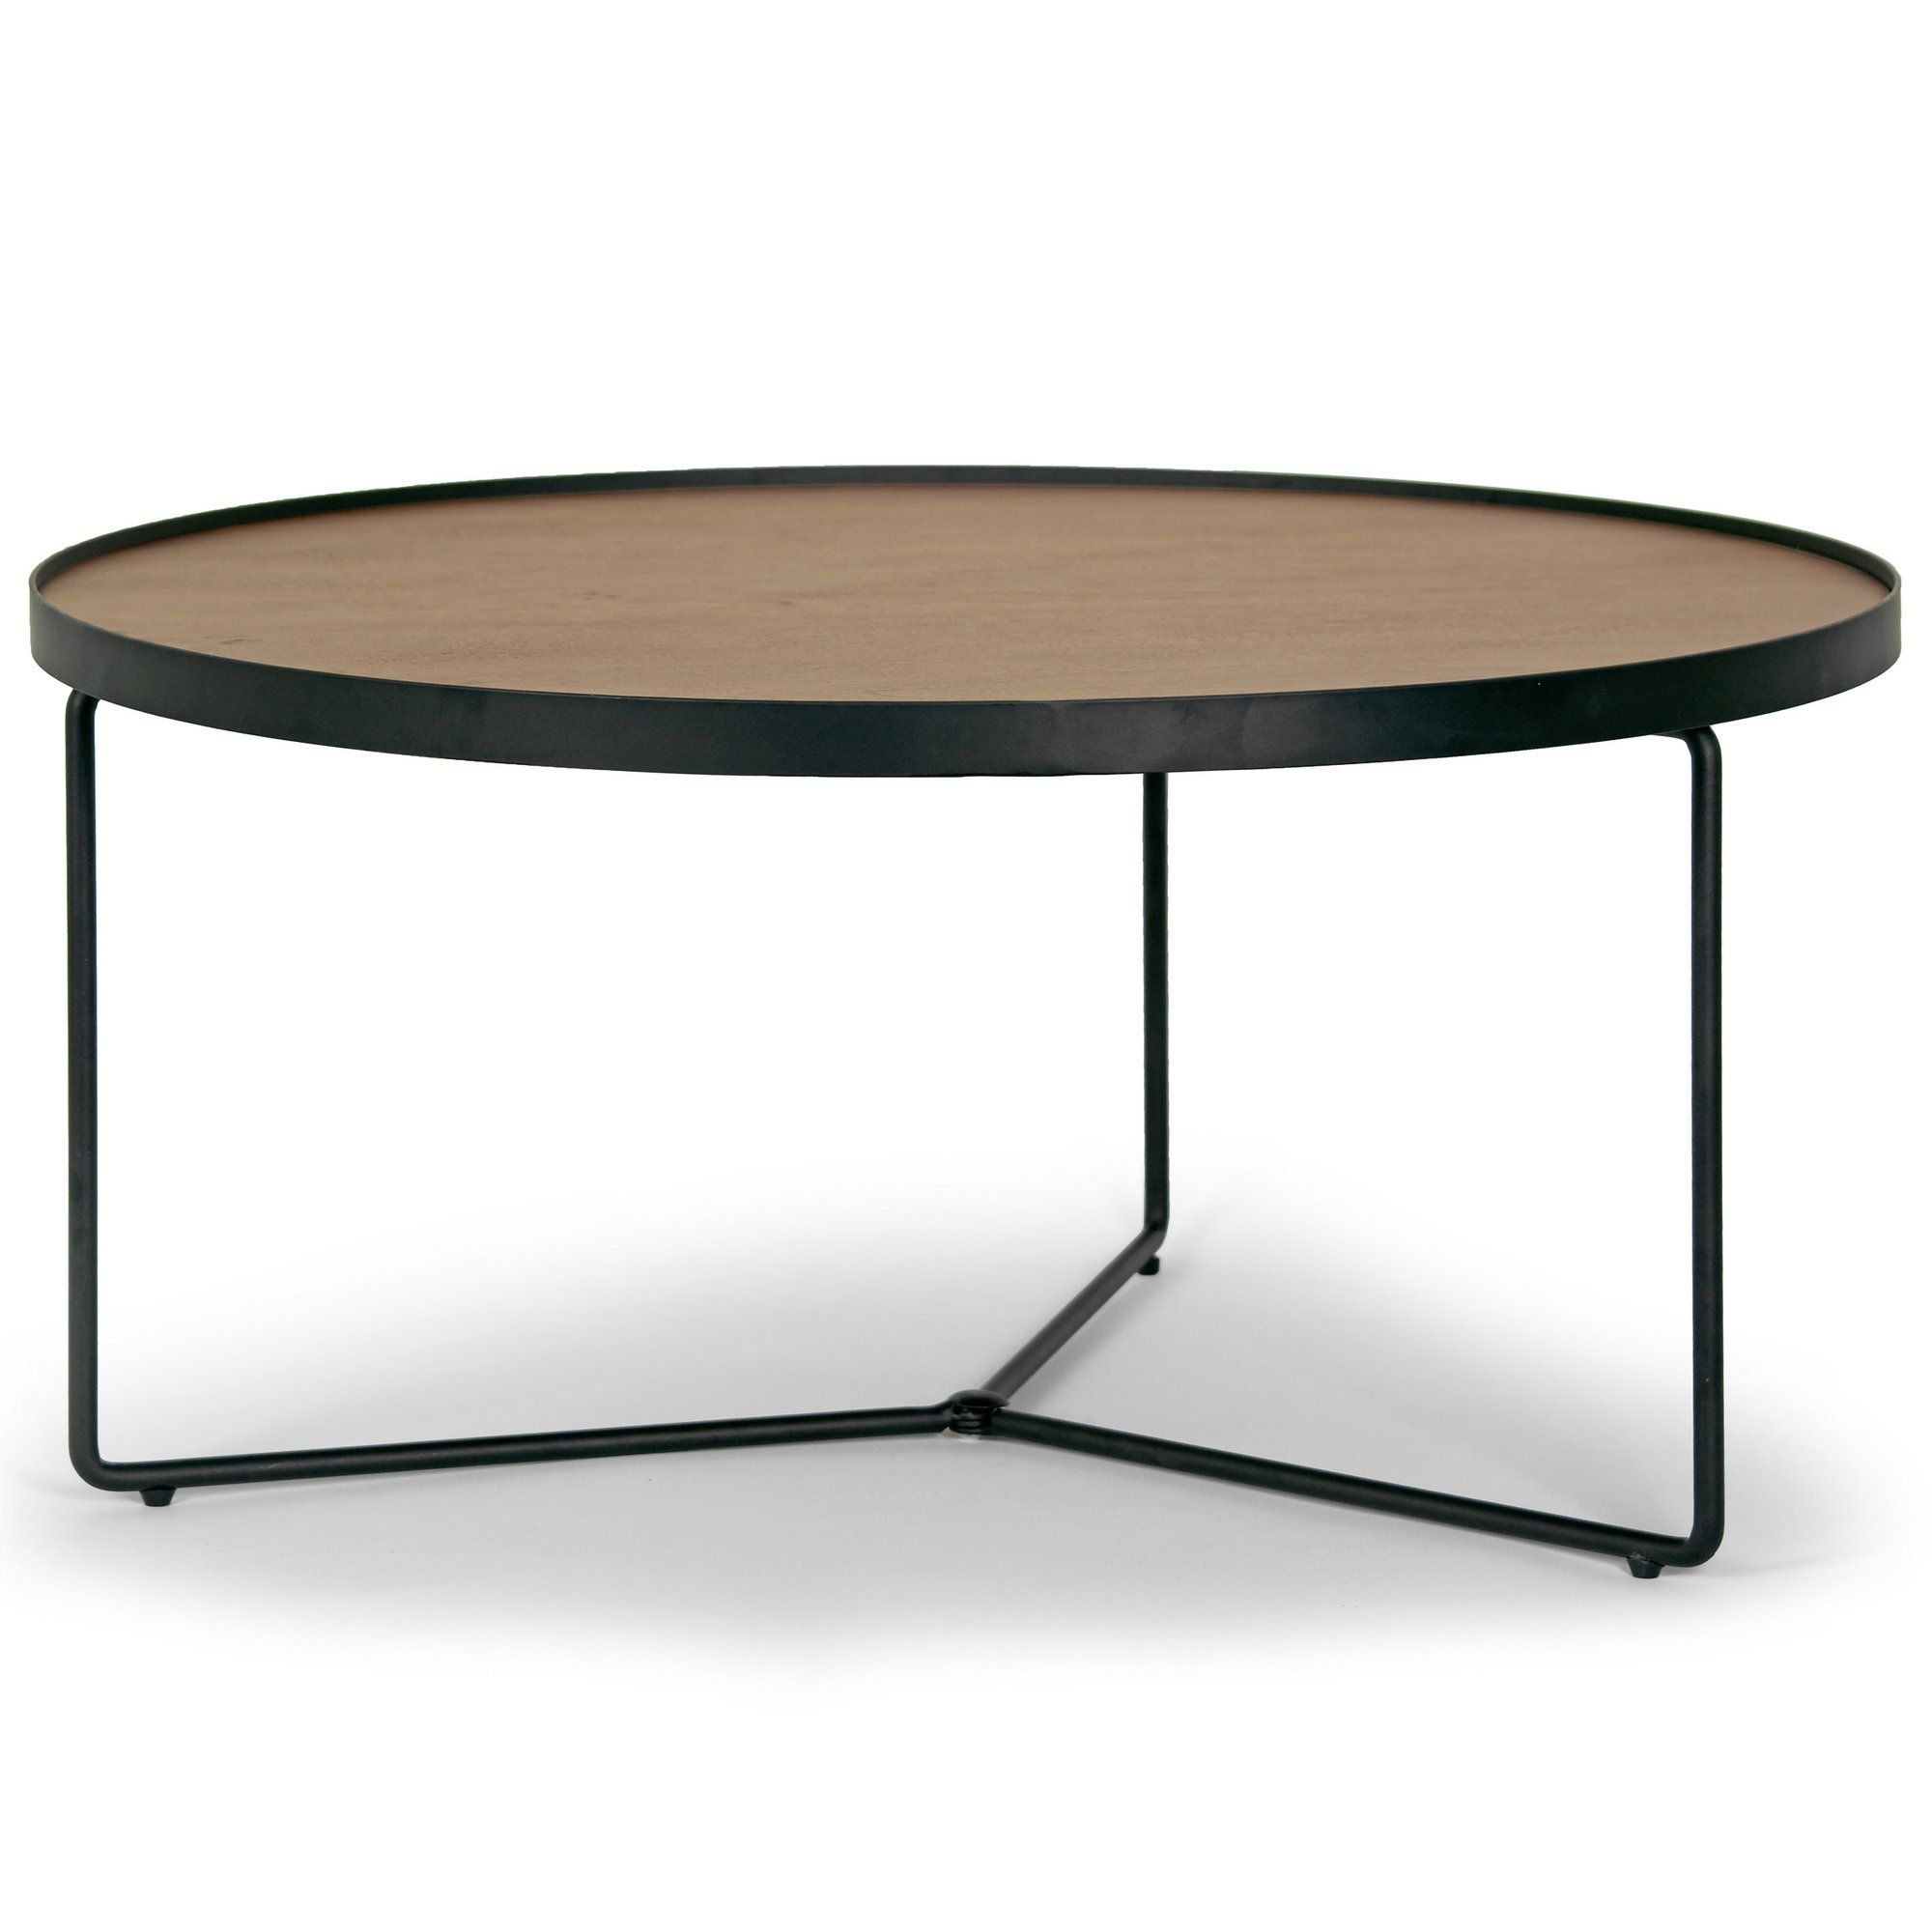 258 Ailsa Rimmed Round Wooden Coffee Table Coffee Table Metal Modern Coffee Table Round Wooden Coffee Table [ 2000 x 2000 Pixel ]